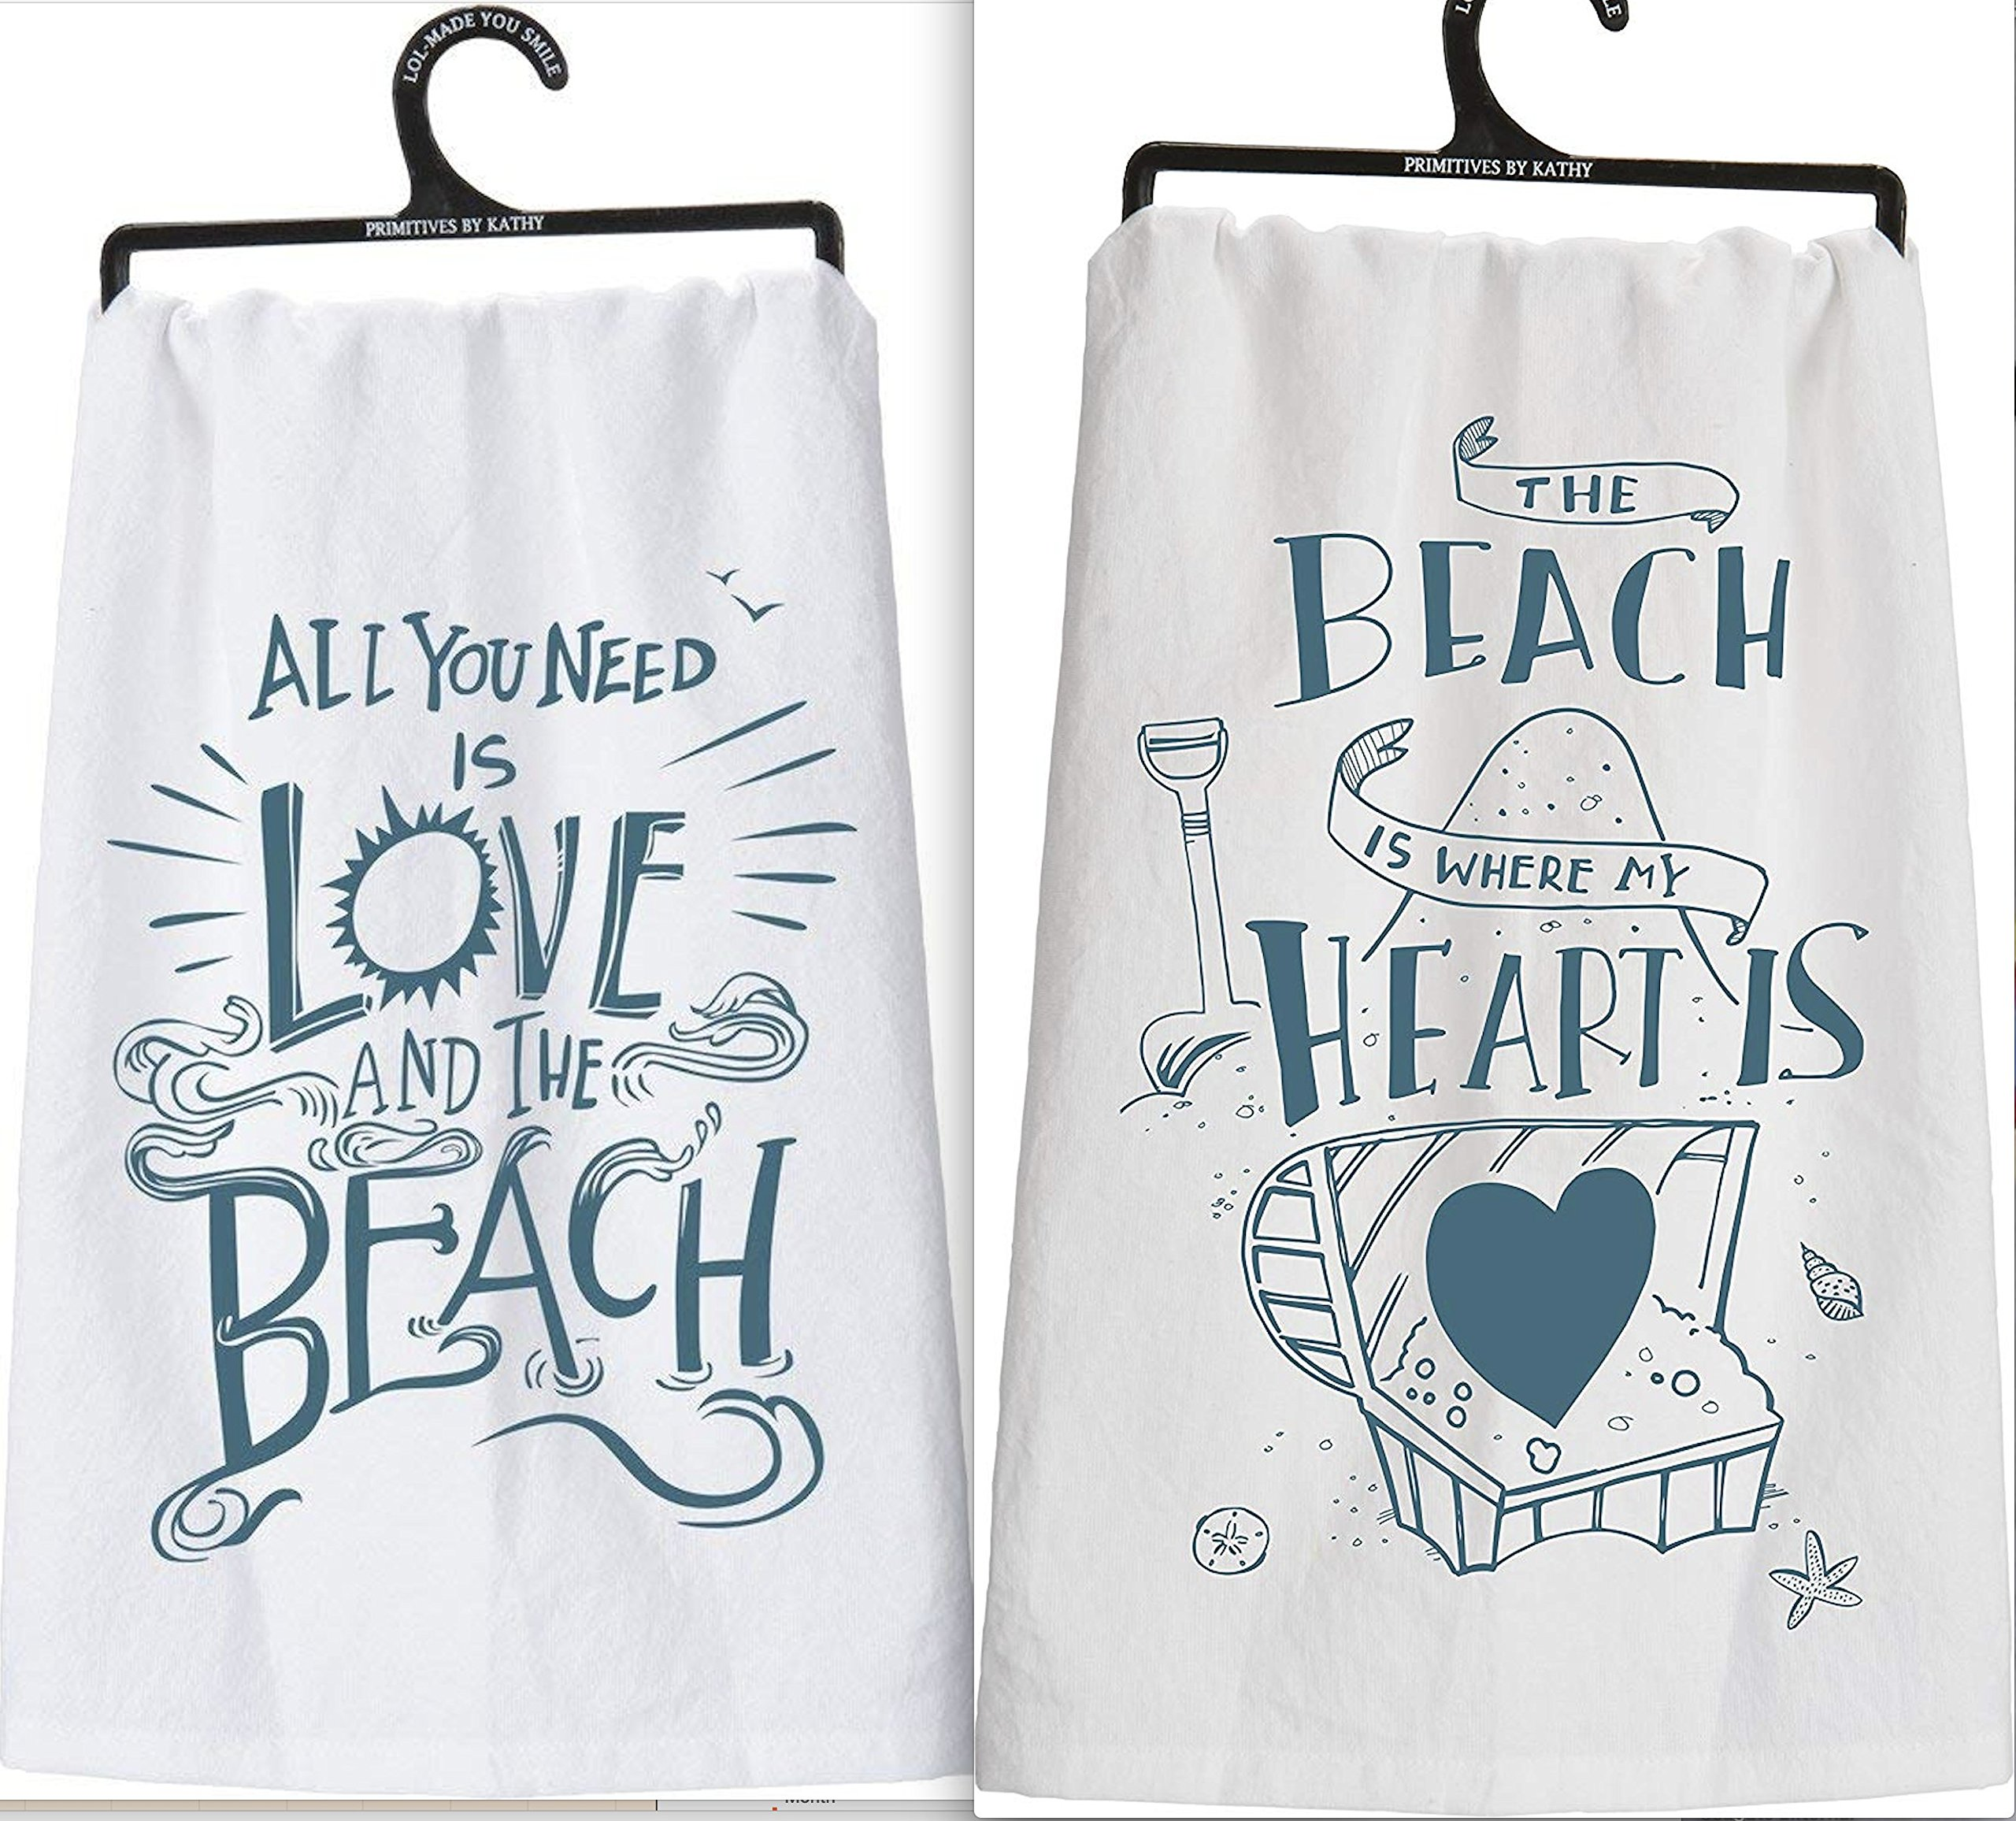 Primitives By Kathy Set 2 White Beach Themed Kitchen Dish Towels ~All You Need Is Love and The Beach - The Beach is Where My Heart Is